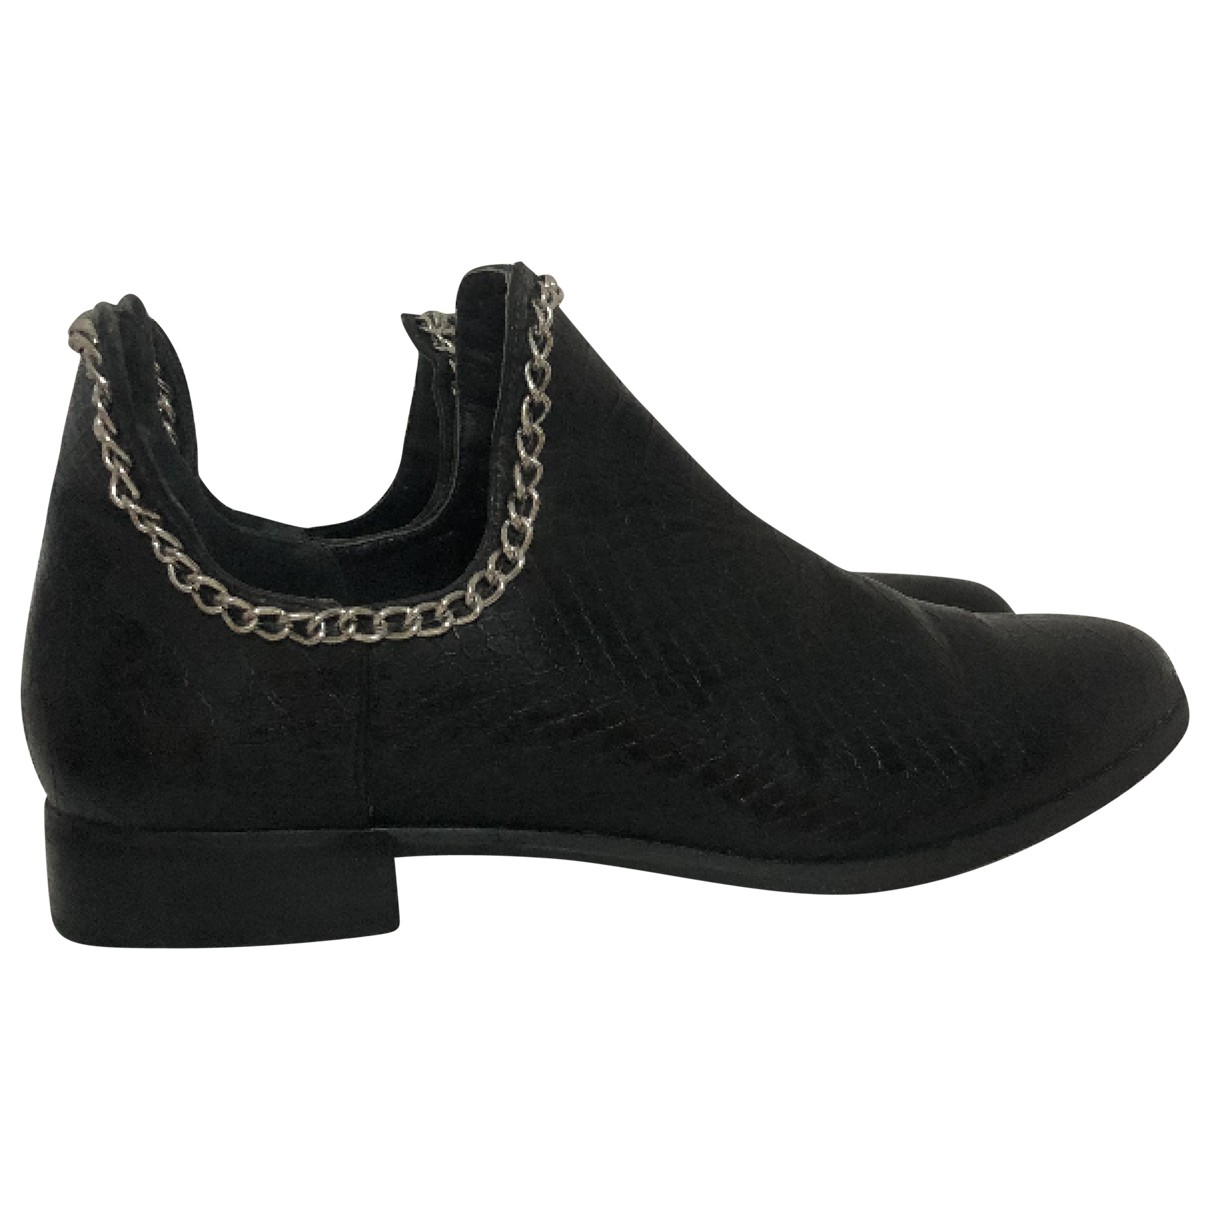 Asos \N Black Leather Ankle boots for Women 37 EU